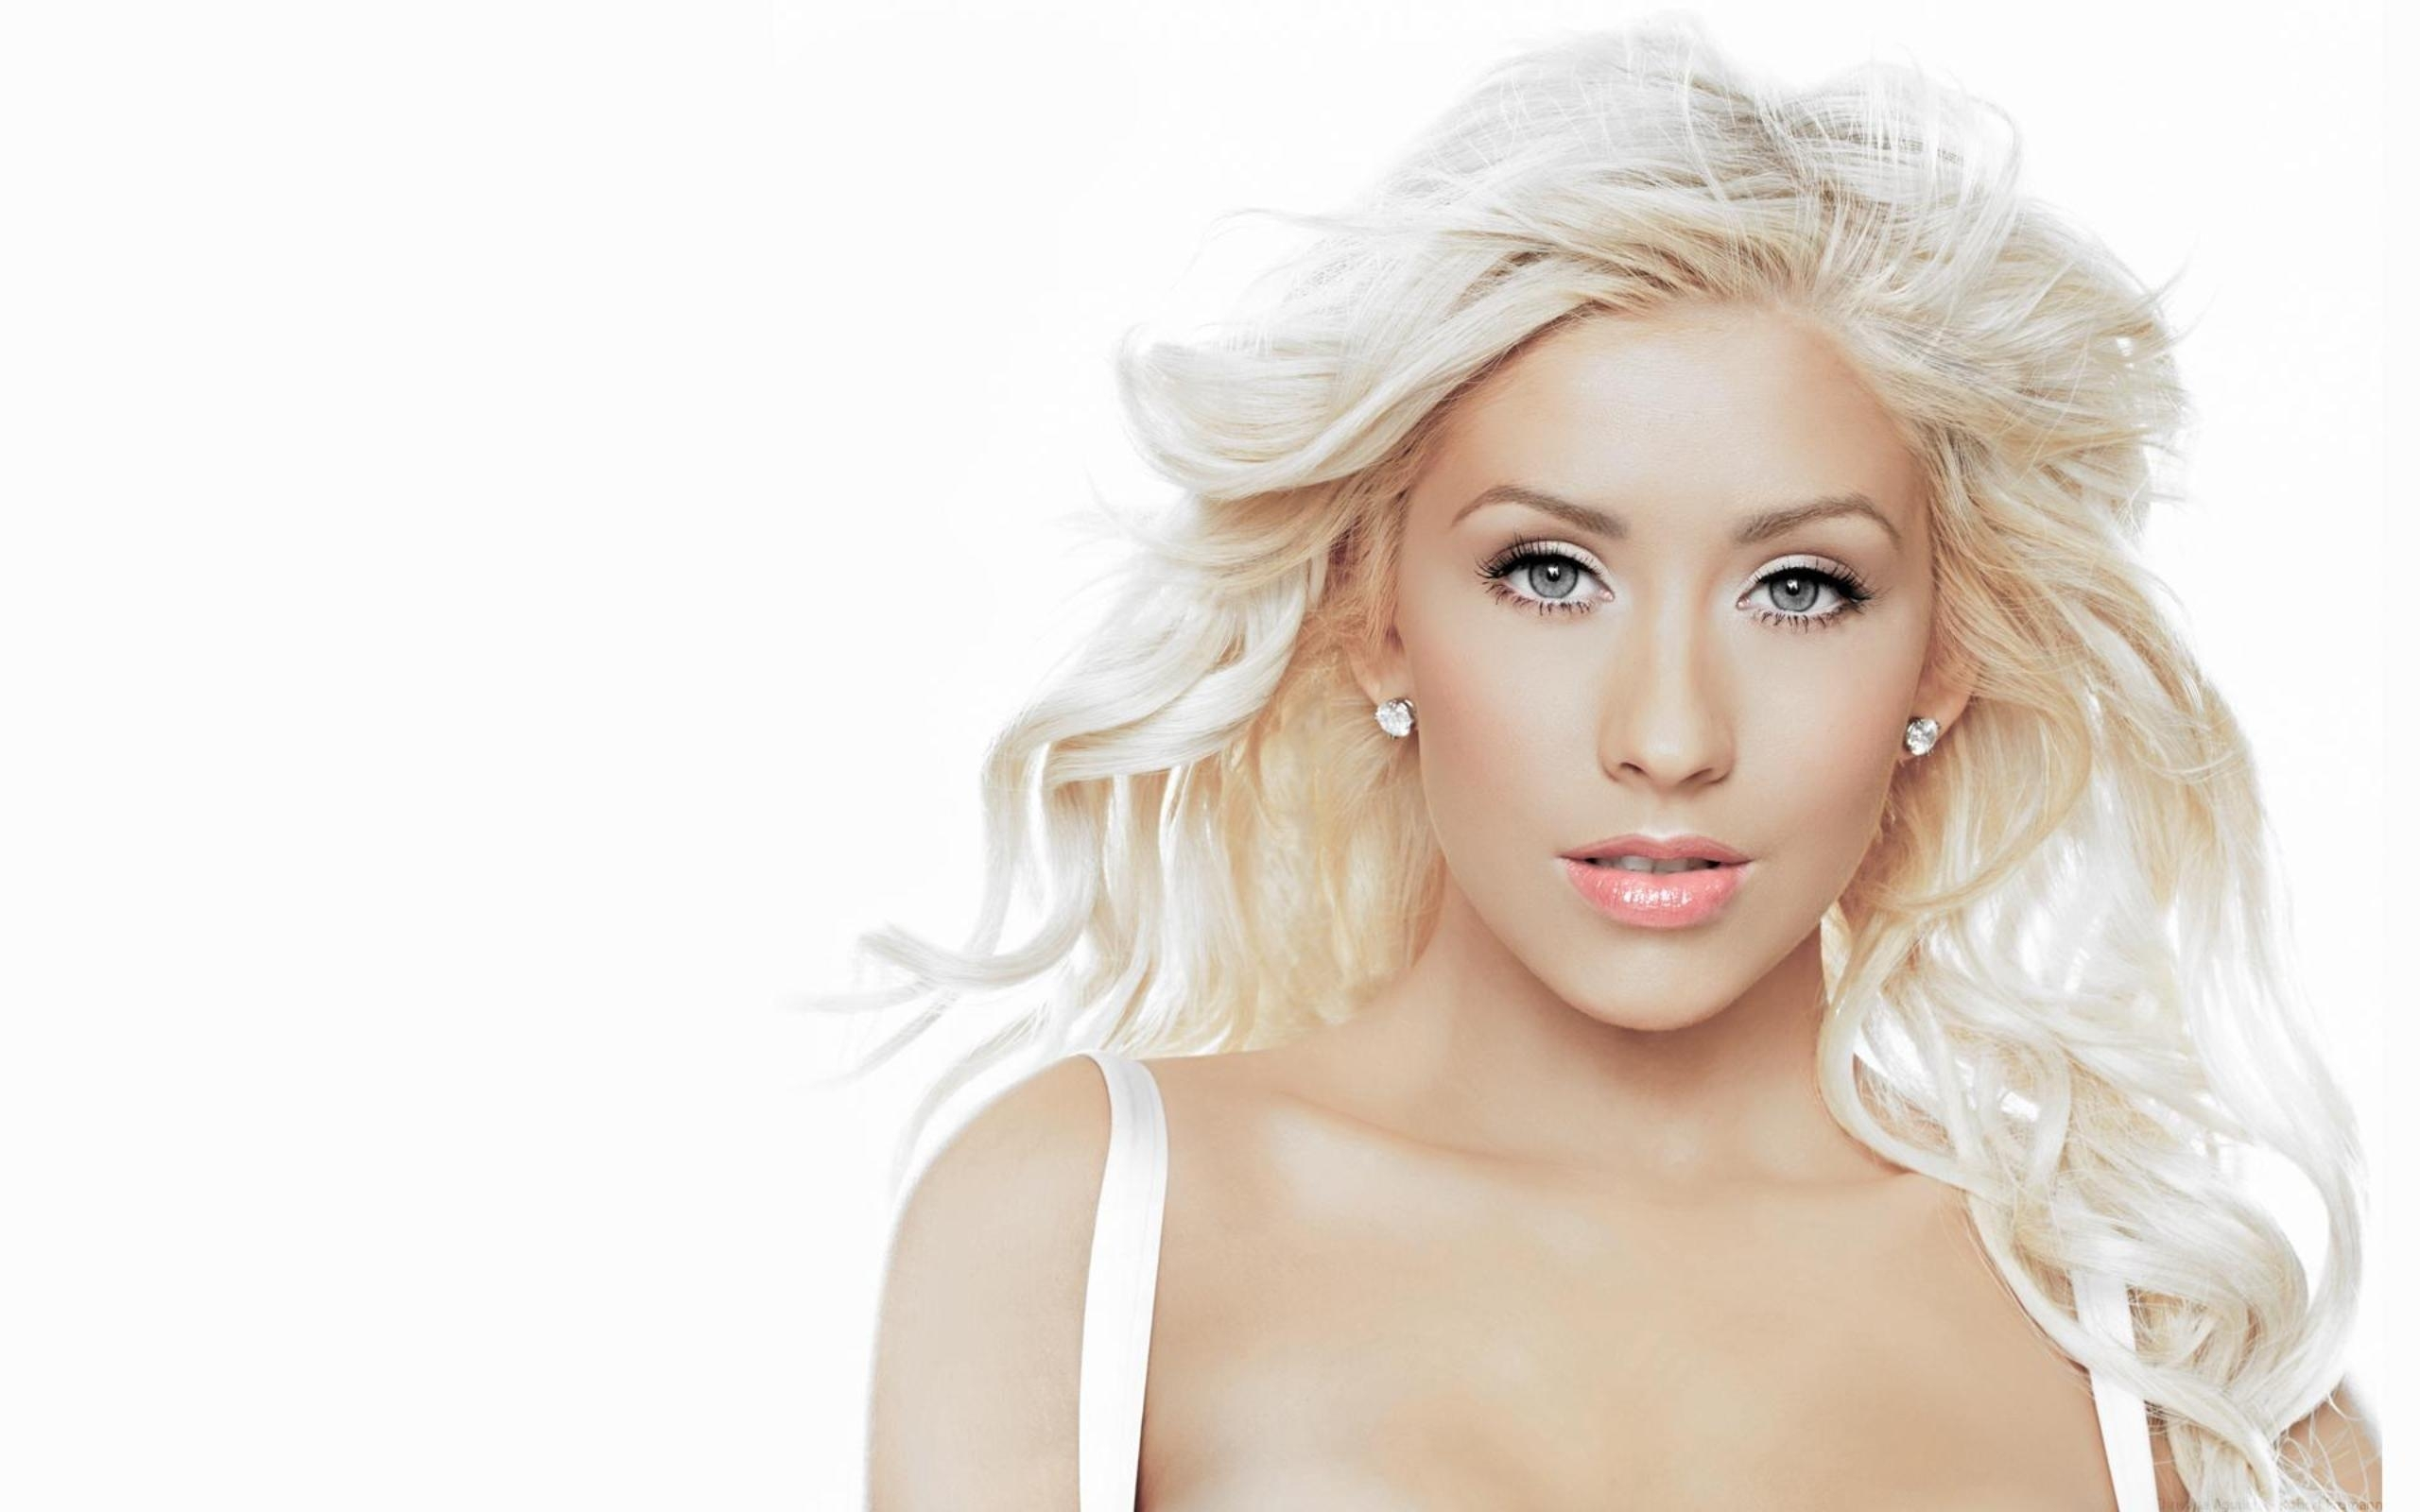 2560x1600 Wallpaper christina aguilera, face, white, hair, blonde, beautiful, lips